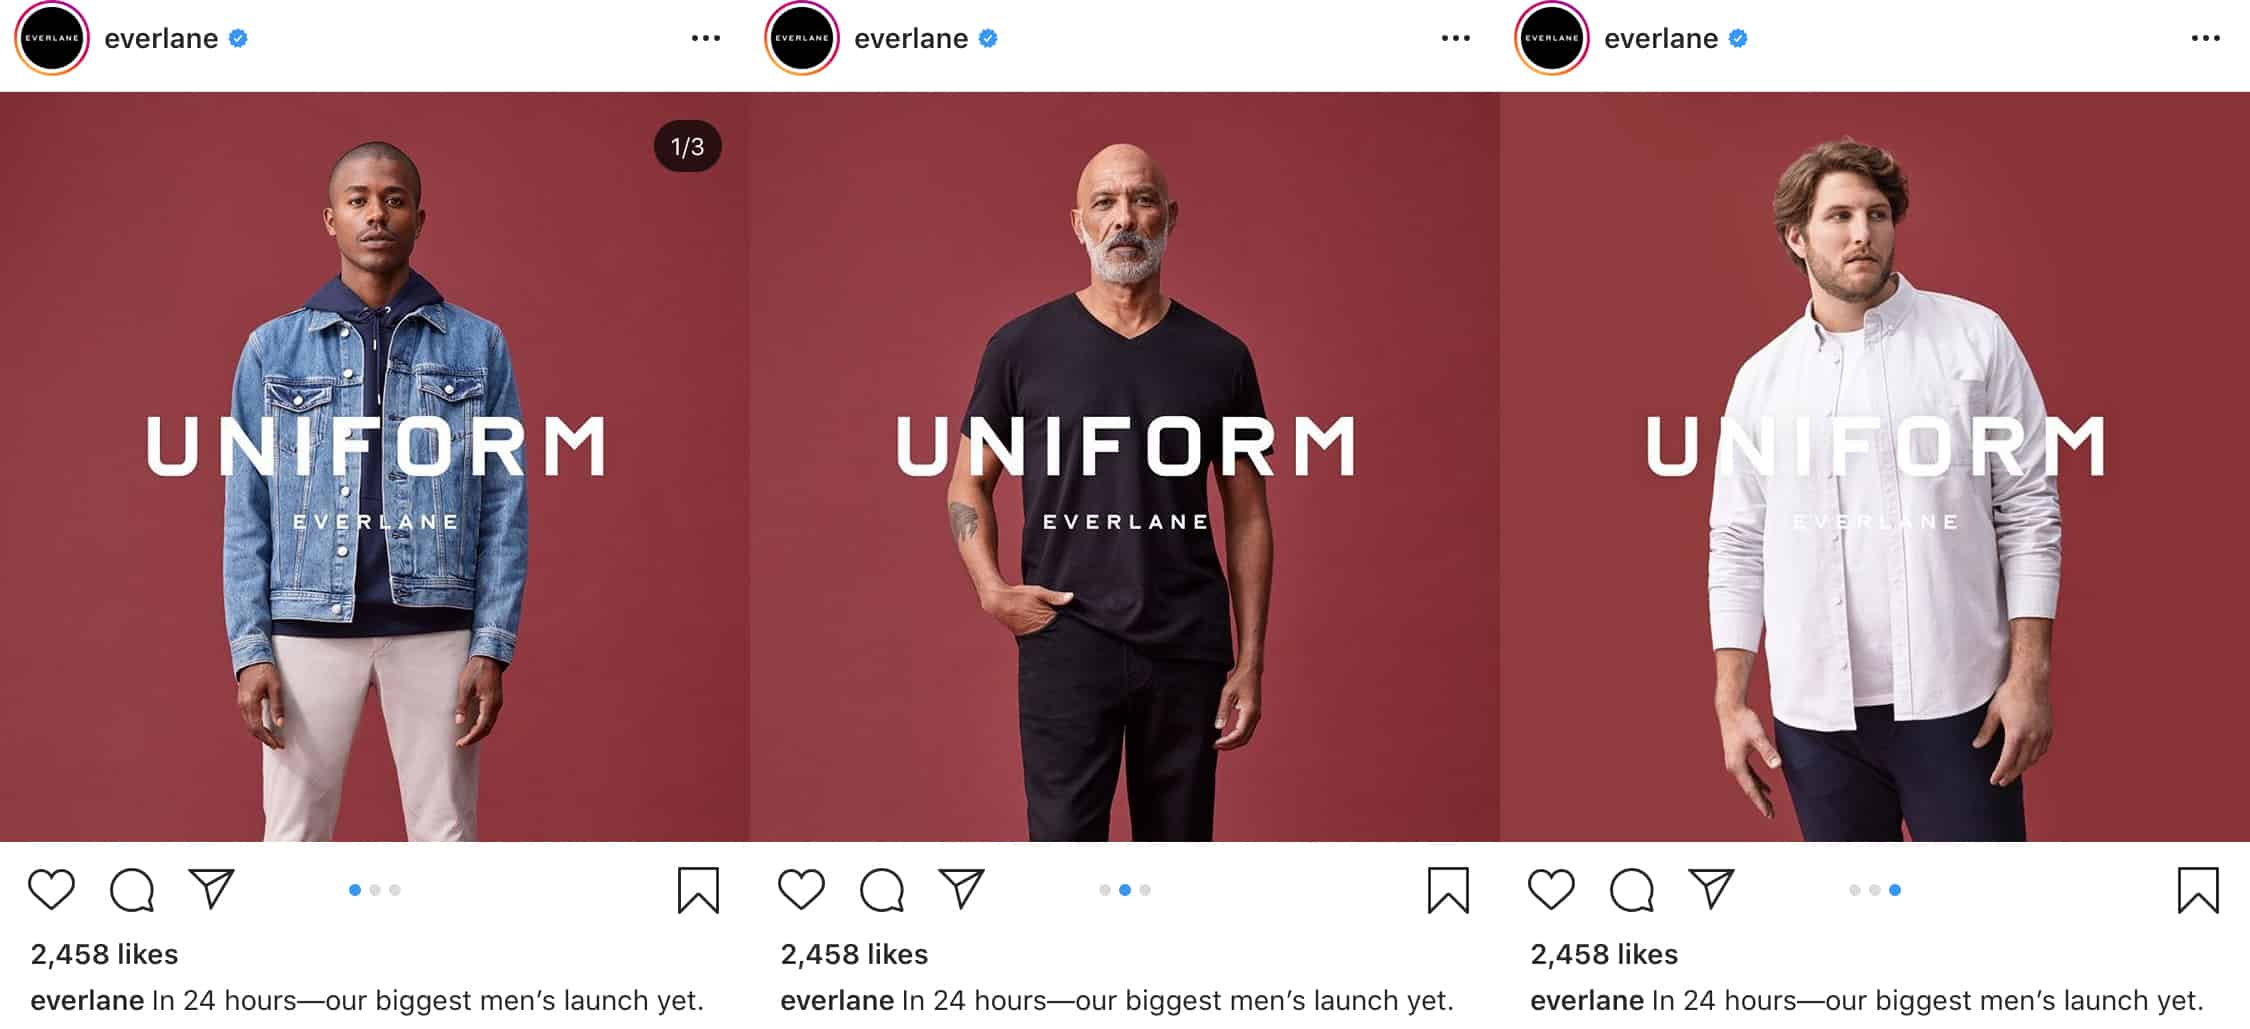 Fotos múltiples de Instagram por everlane